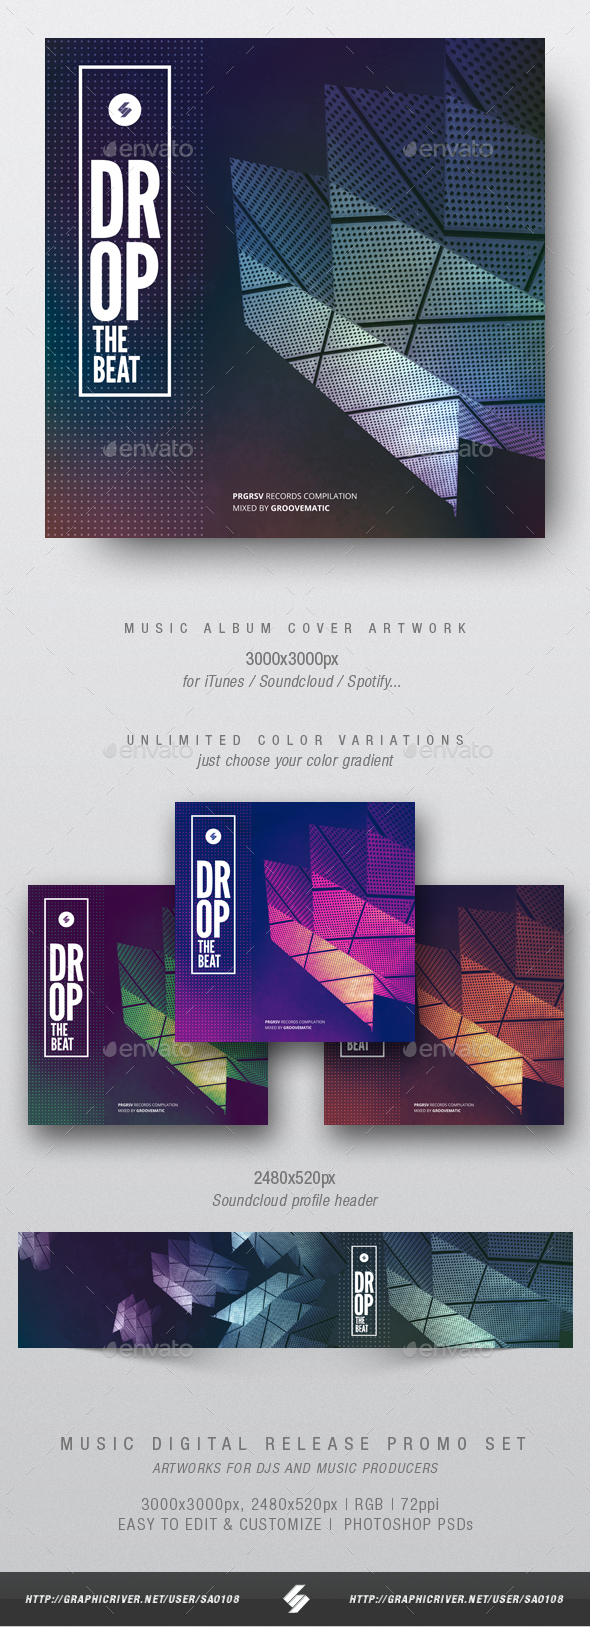 Audiobook Graphics, Designs & Templates from GraphicRiver